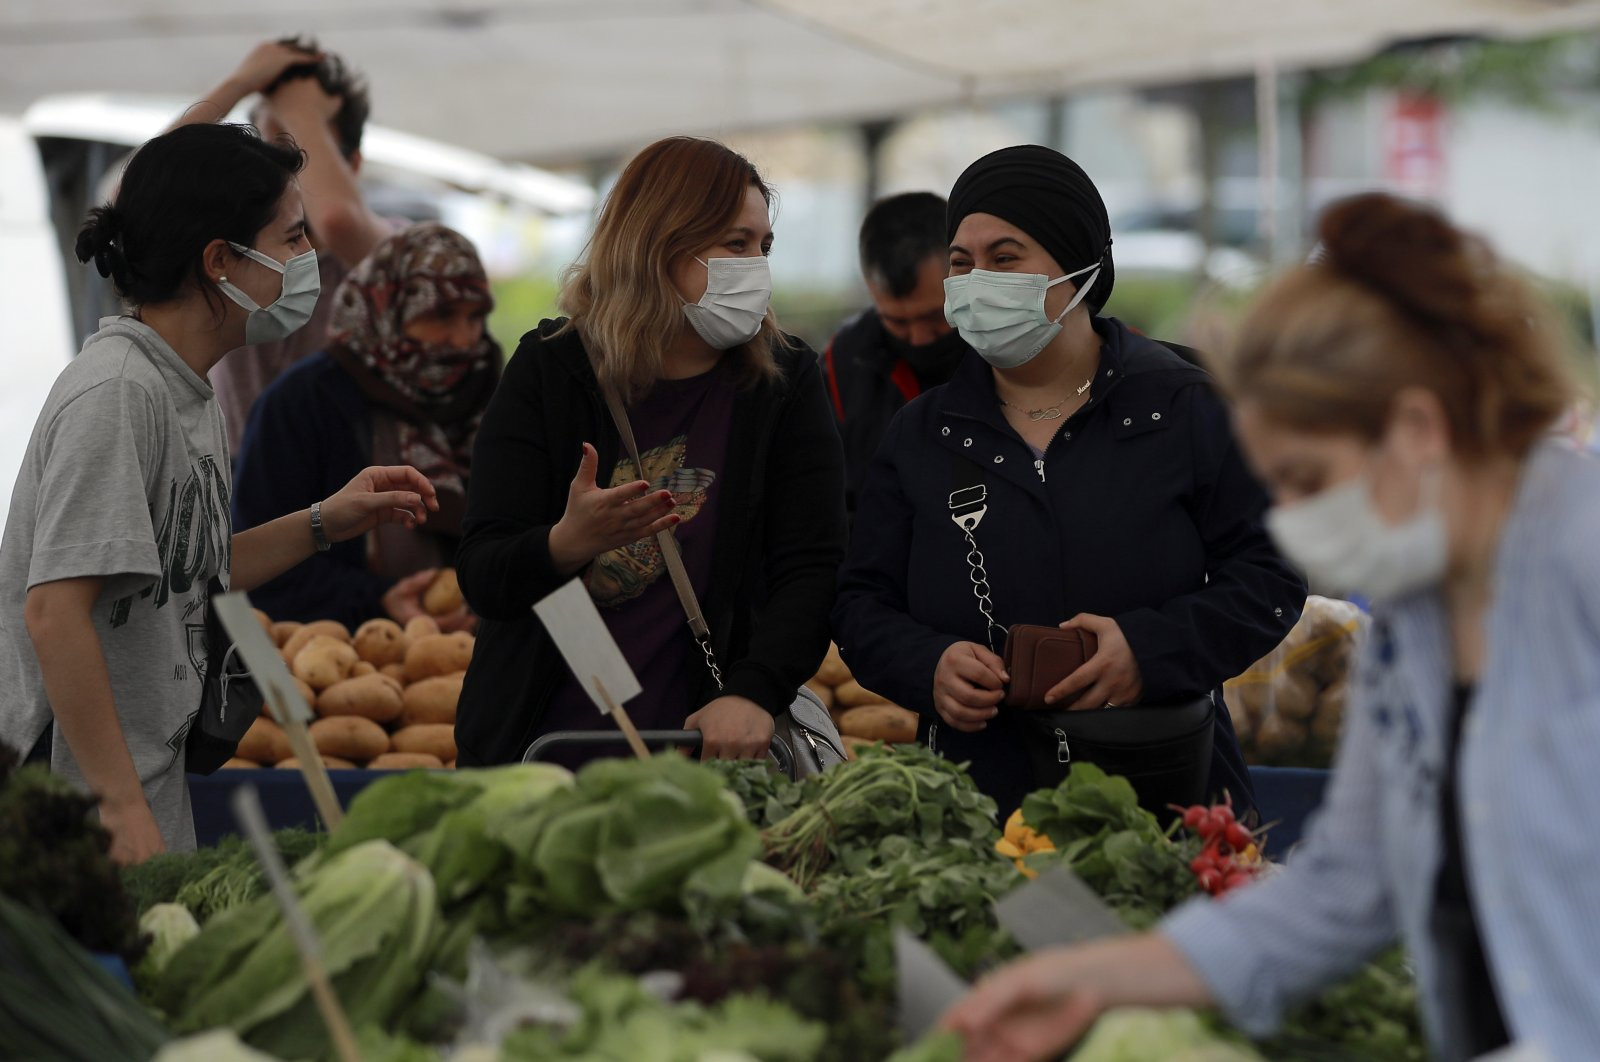 People shop in a market amid the coronavirus outbreak Istanbul, Turkey, May 8, 2021. (AP Photo)